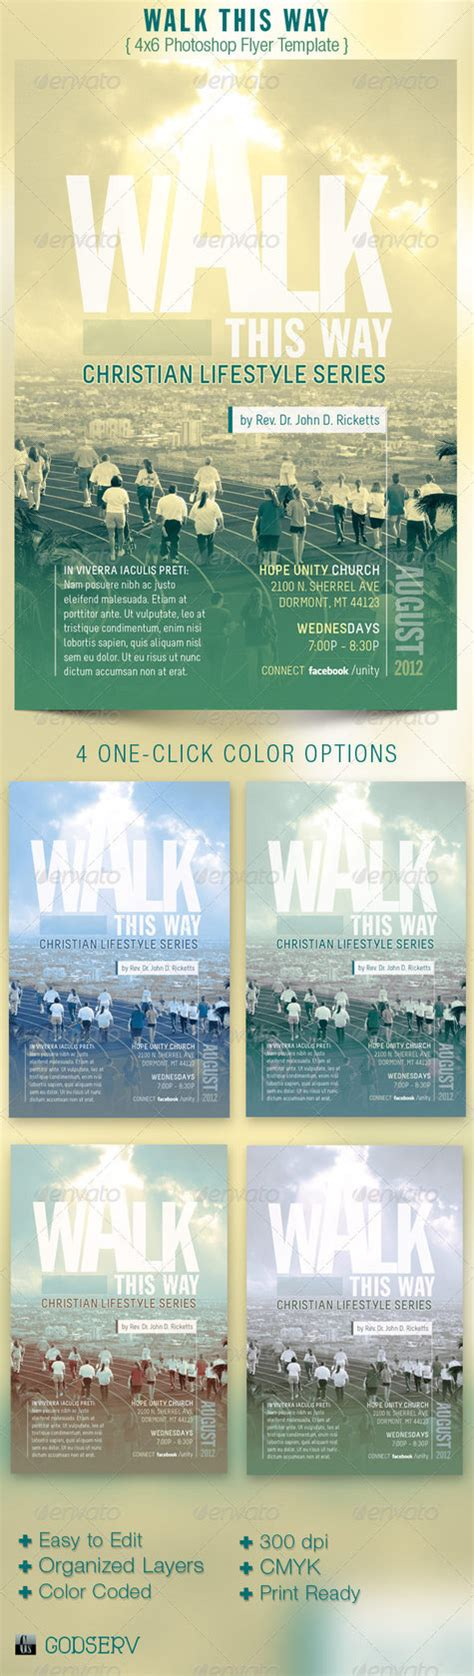 Walkathon Explore Walkathon On Deviantart Walk A Thon Flyer Template